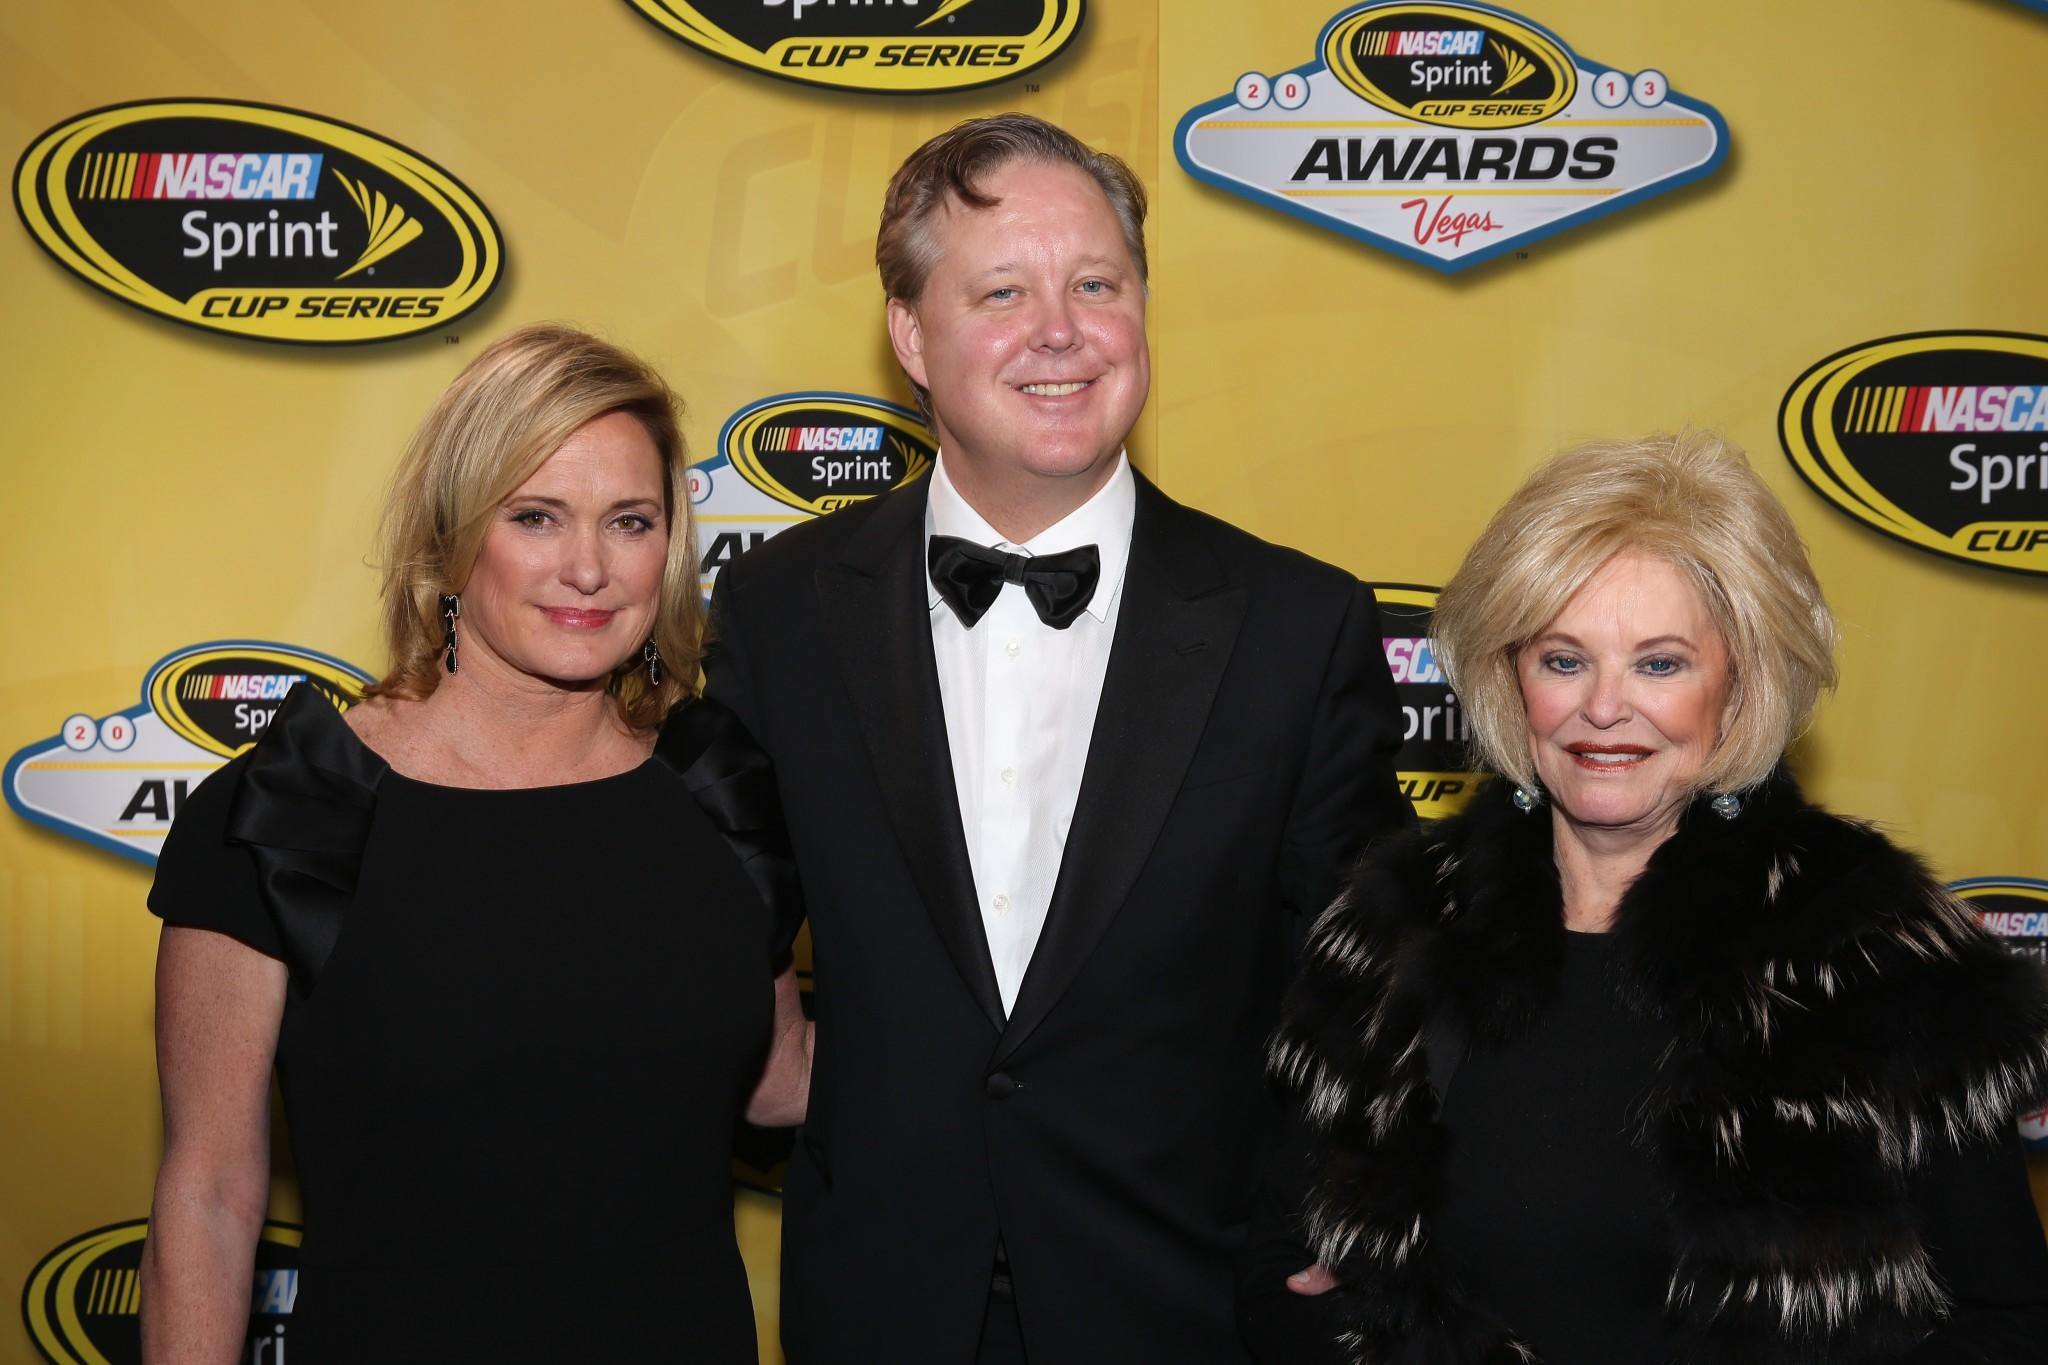 Betty Jane France, mother of NASCAR CEO, dies